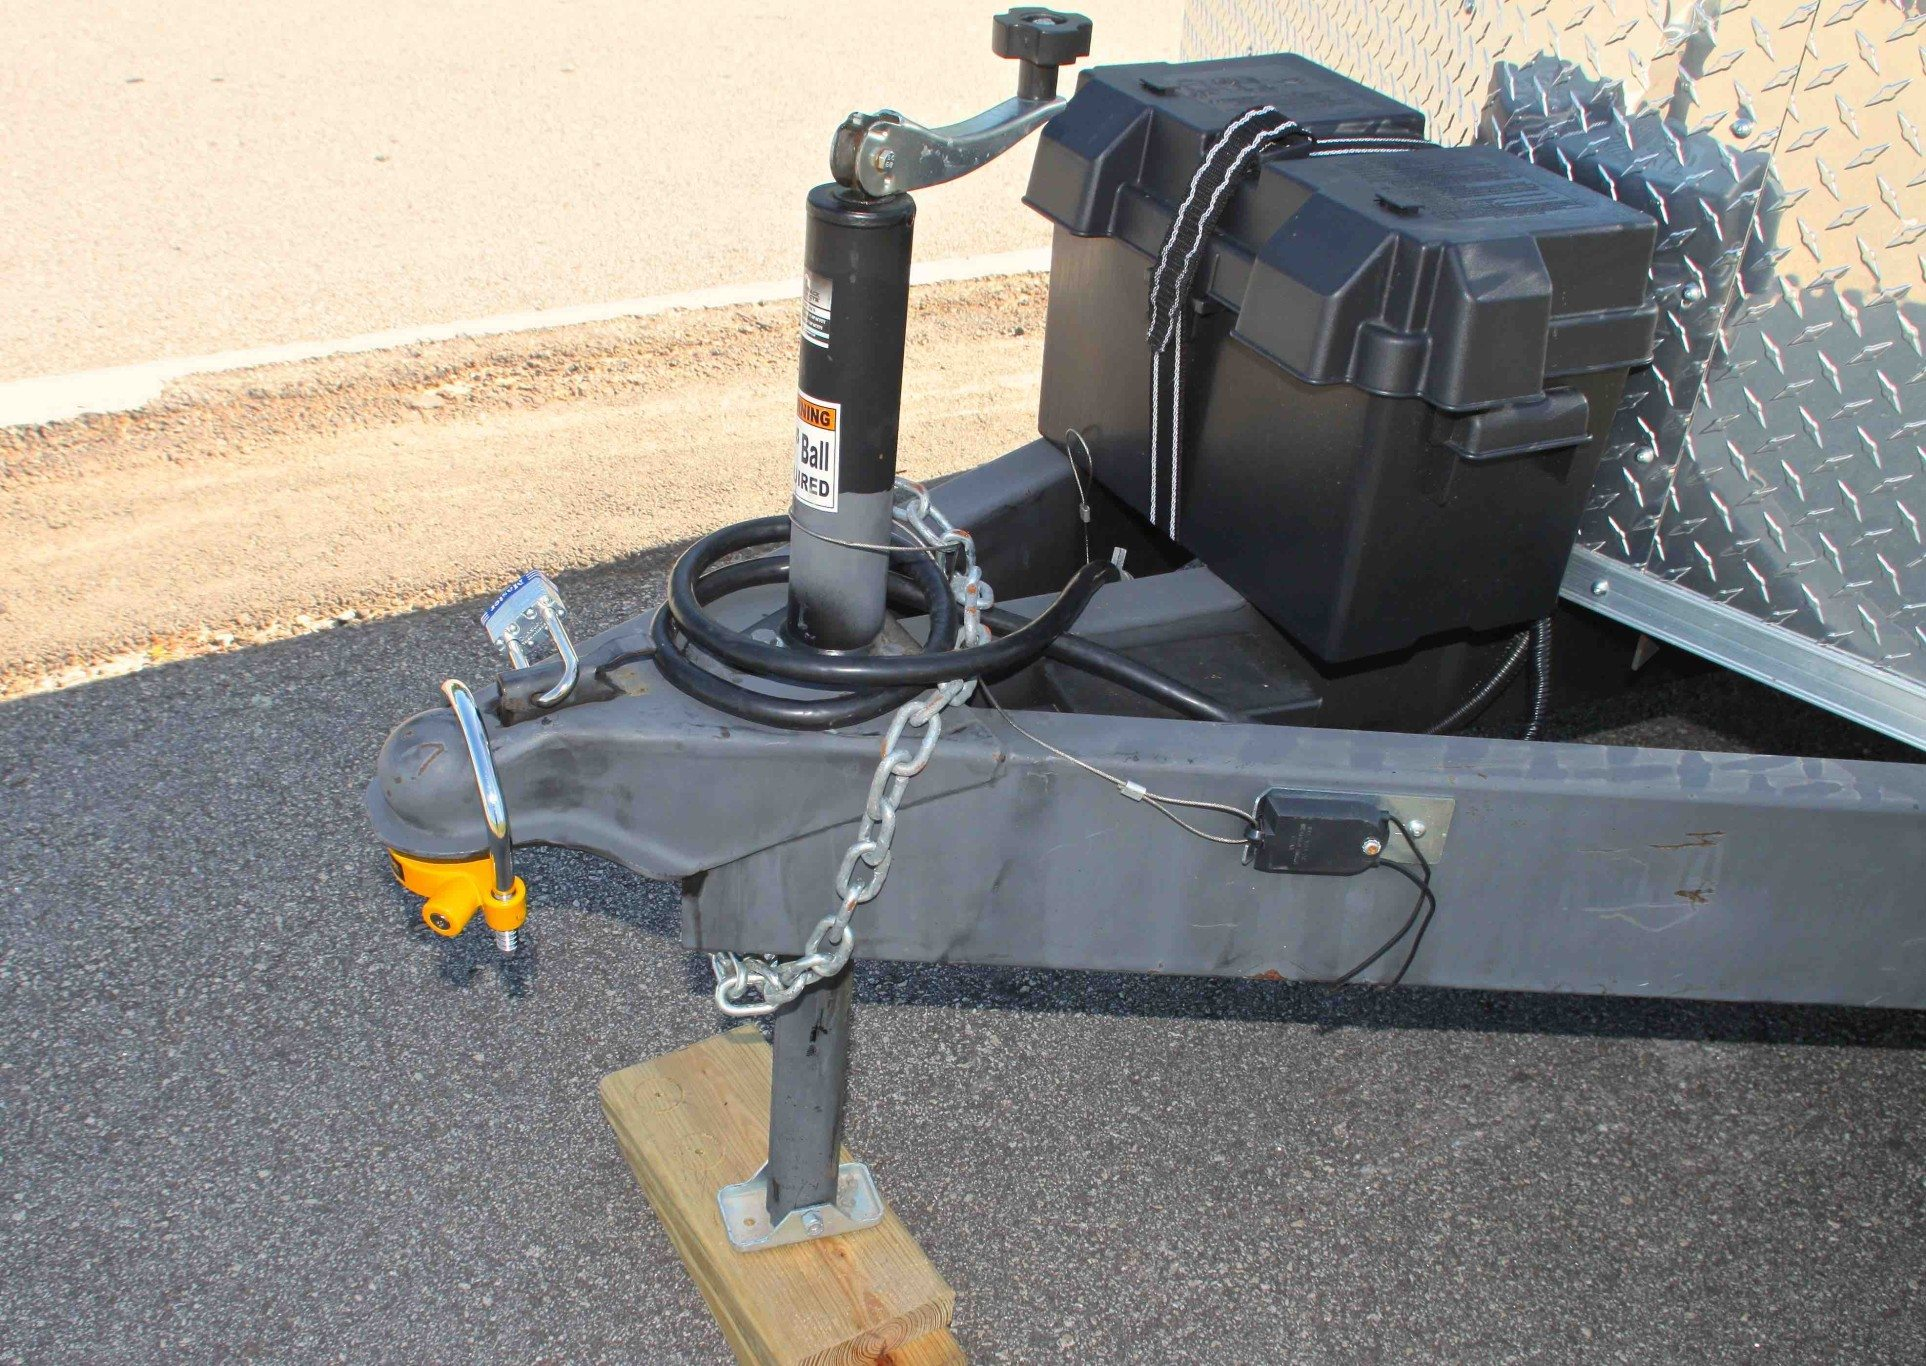 Lessons From The Road Safe Trailering Heacock Classic Insurance Electric Trailer Brakes How They Work If Is One That Equipped With Or Inertia Be Sure To Check Them Out And Make Properly Evenly